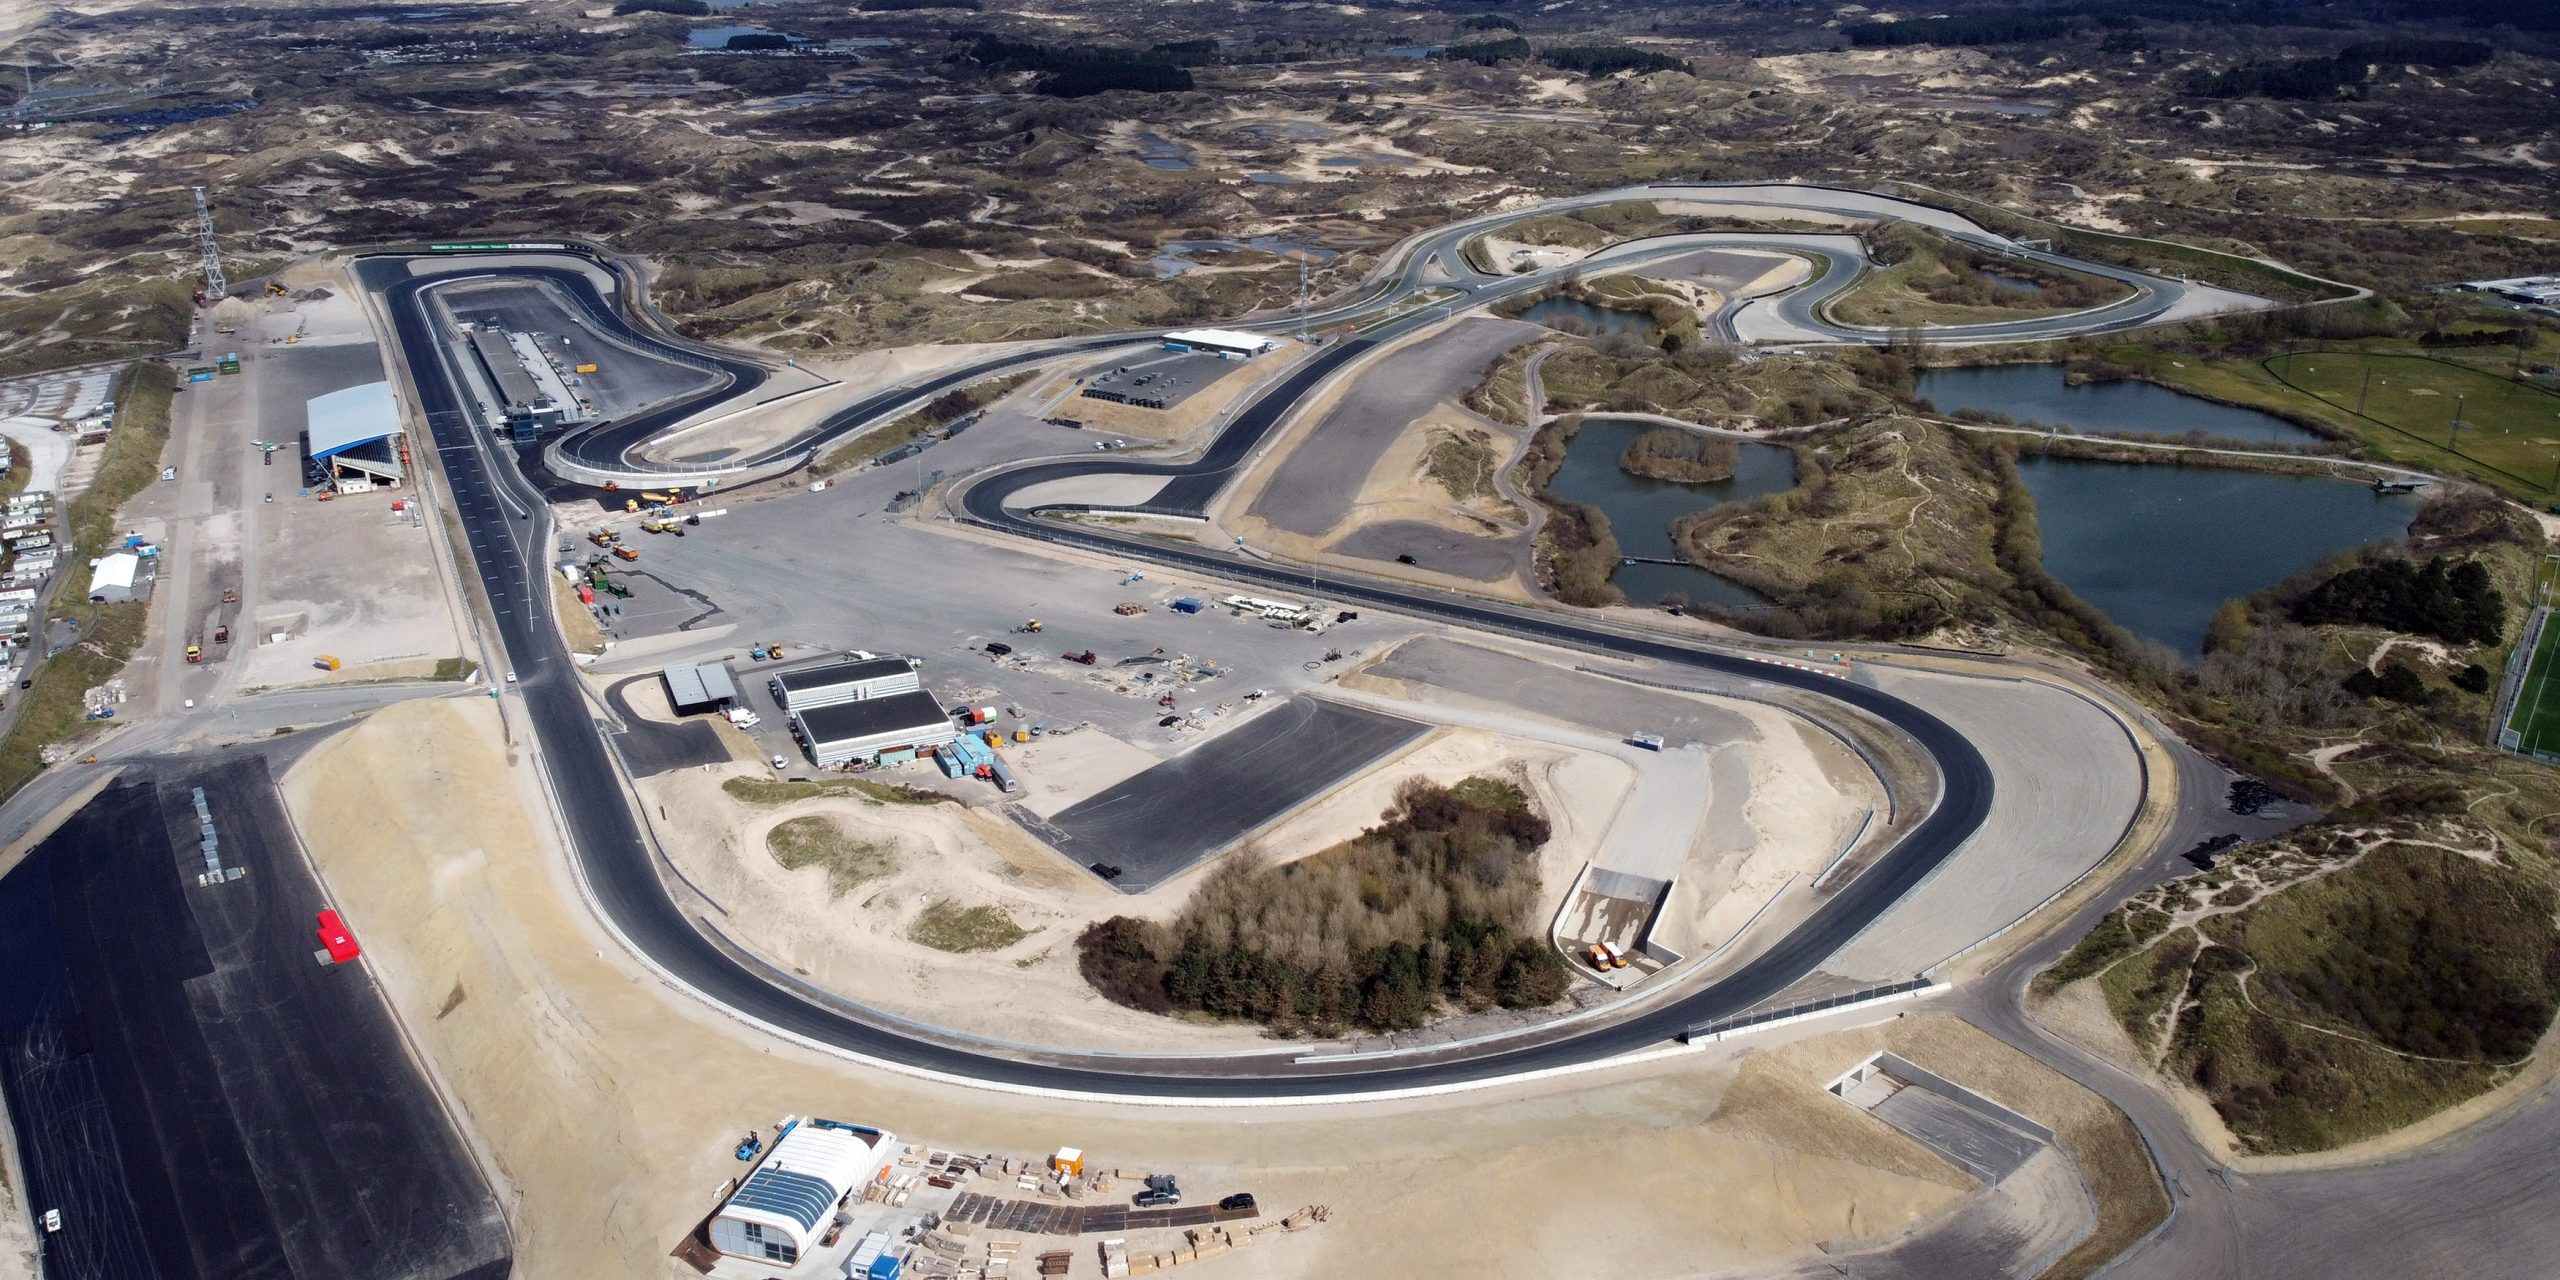 Circuit Zandvoort Grade 1 License Name Change And Ready For The Dutch Grand Prix 2021 Articles Trackside Legends